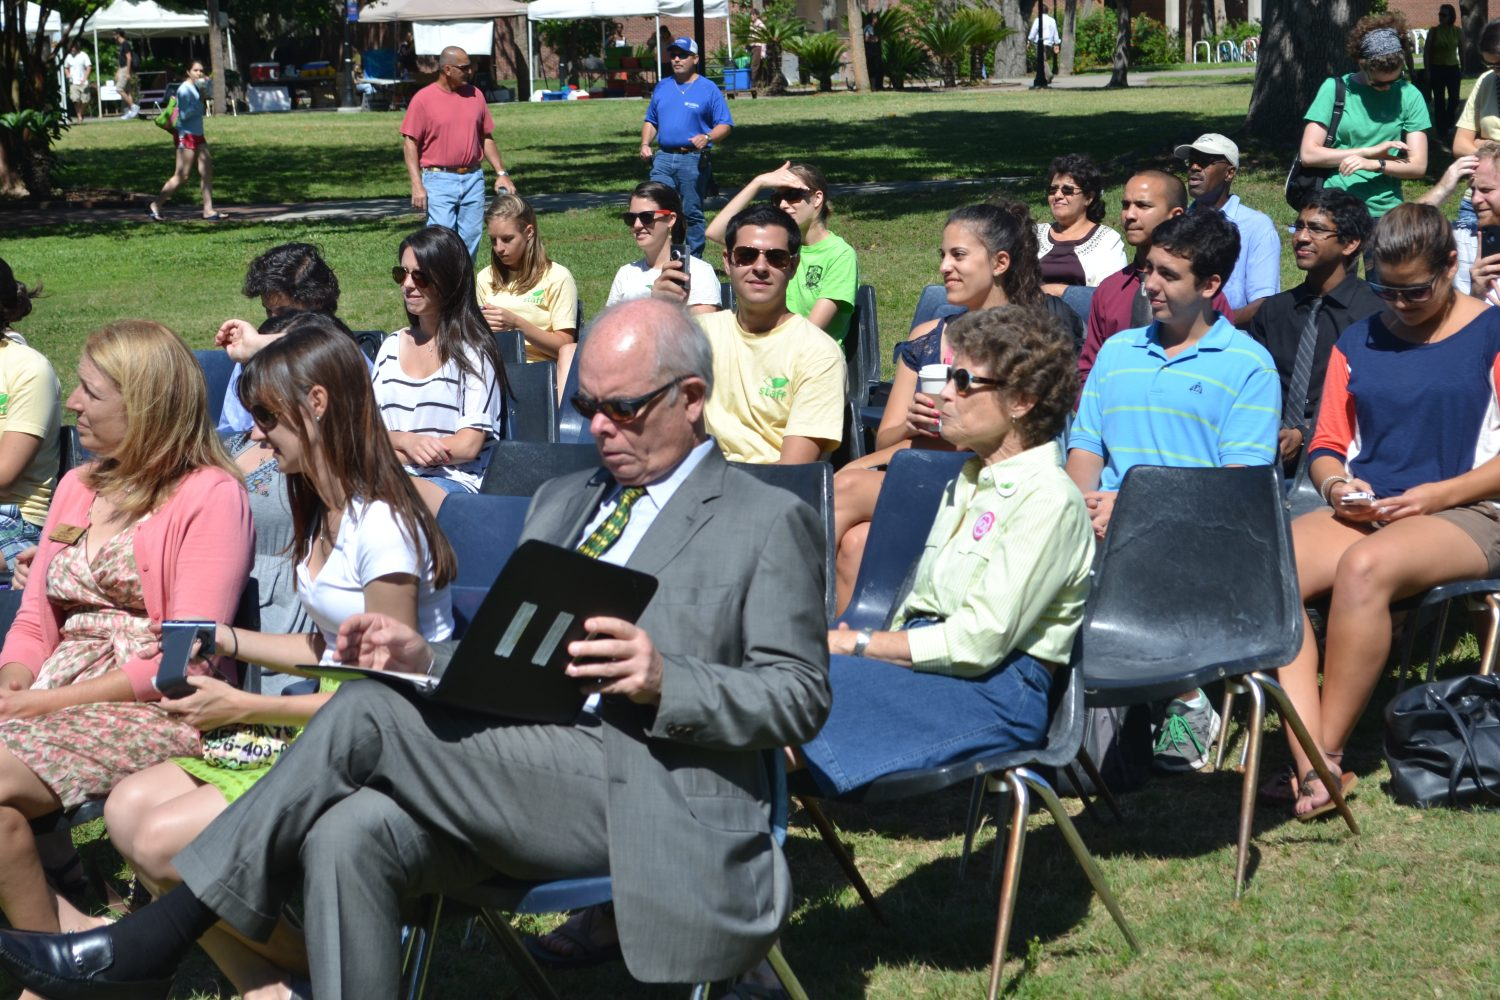 UF president, Bernie Machen, listens to the program at Campus Earth Day